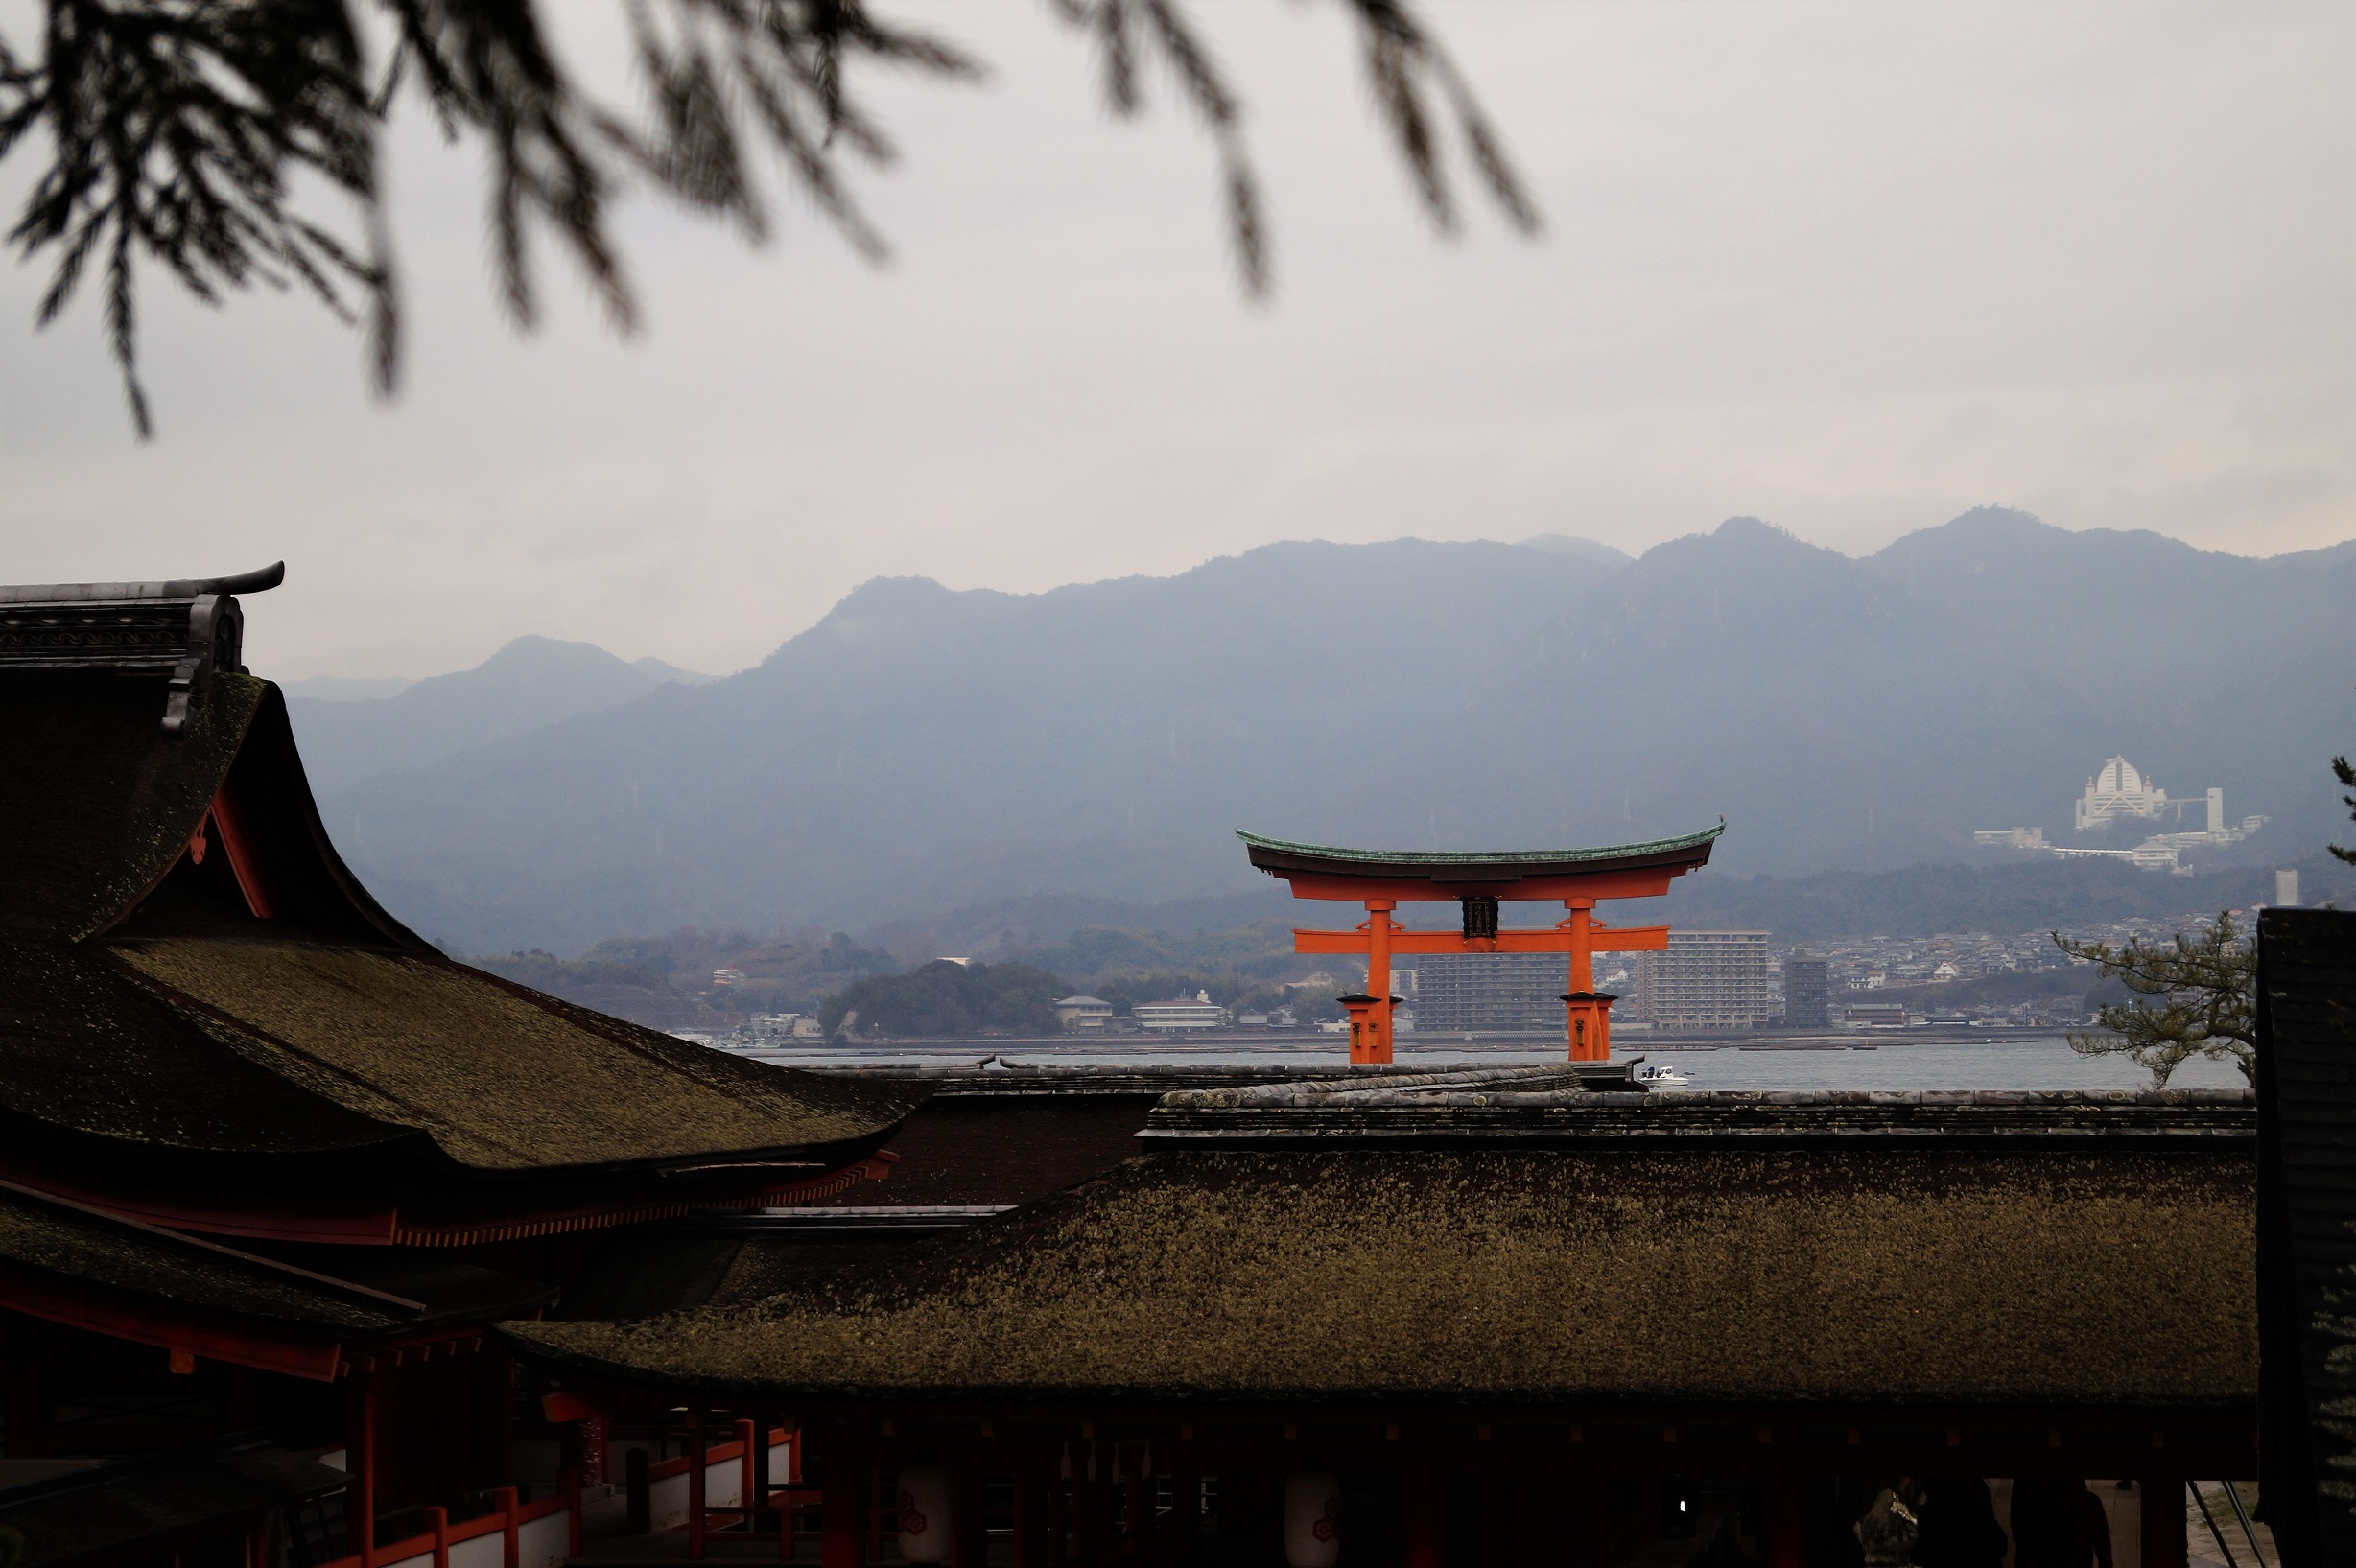 La isla de Miyajima - Miyajima Island, a day visiting the great Torii